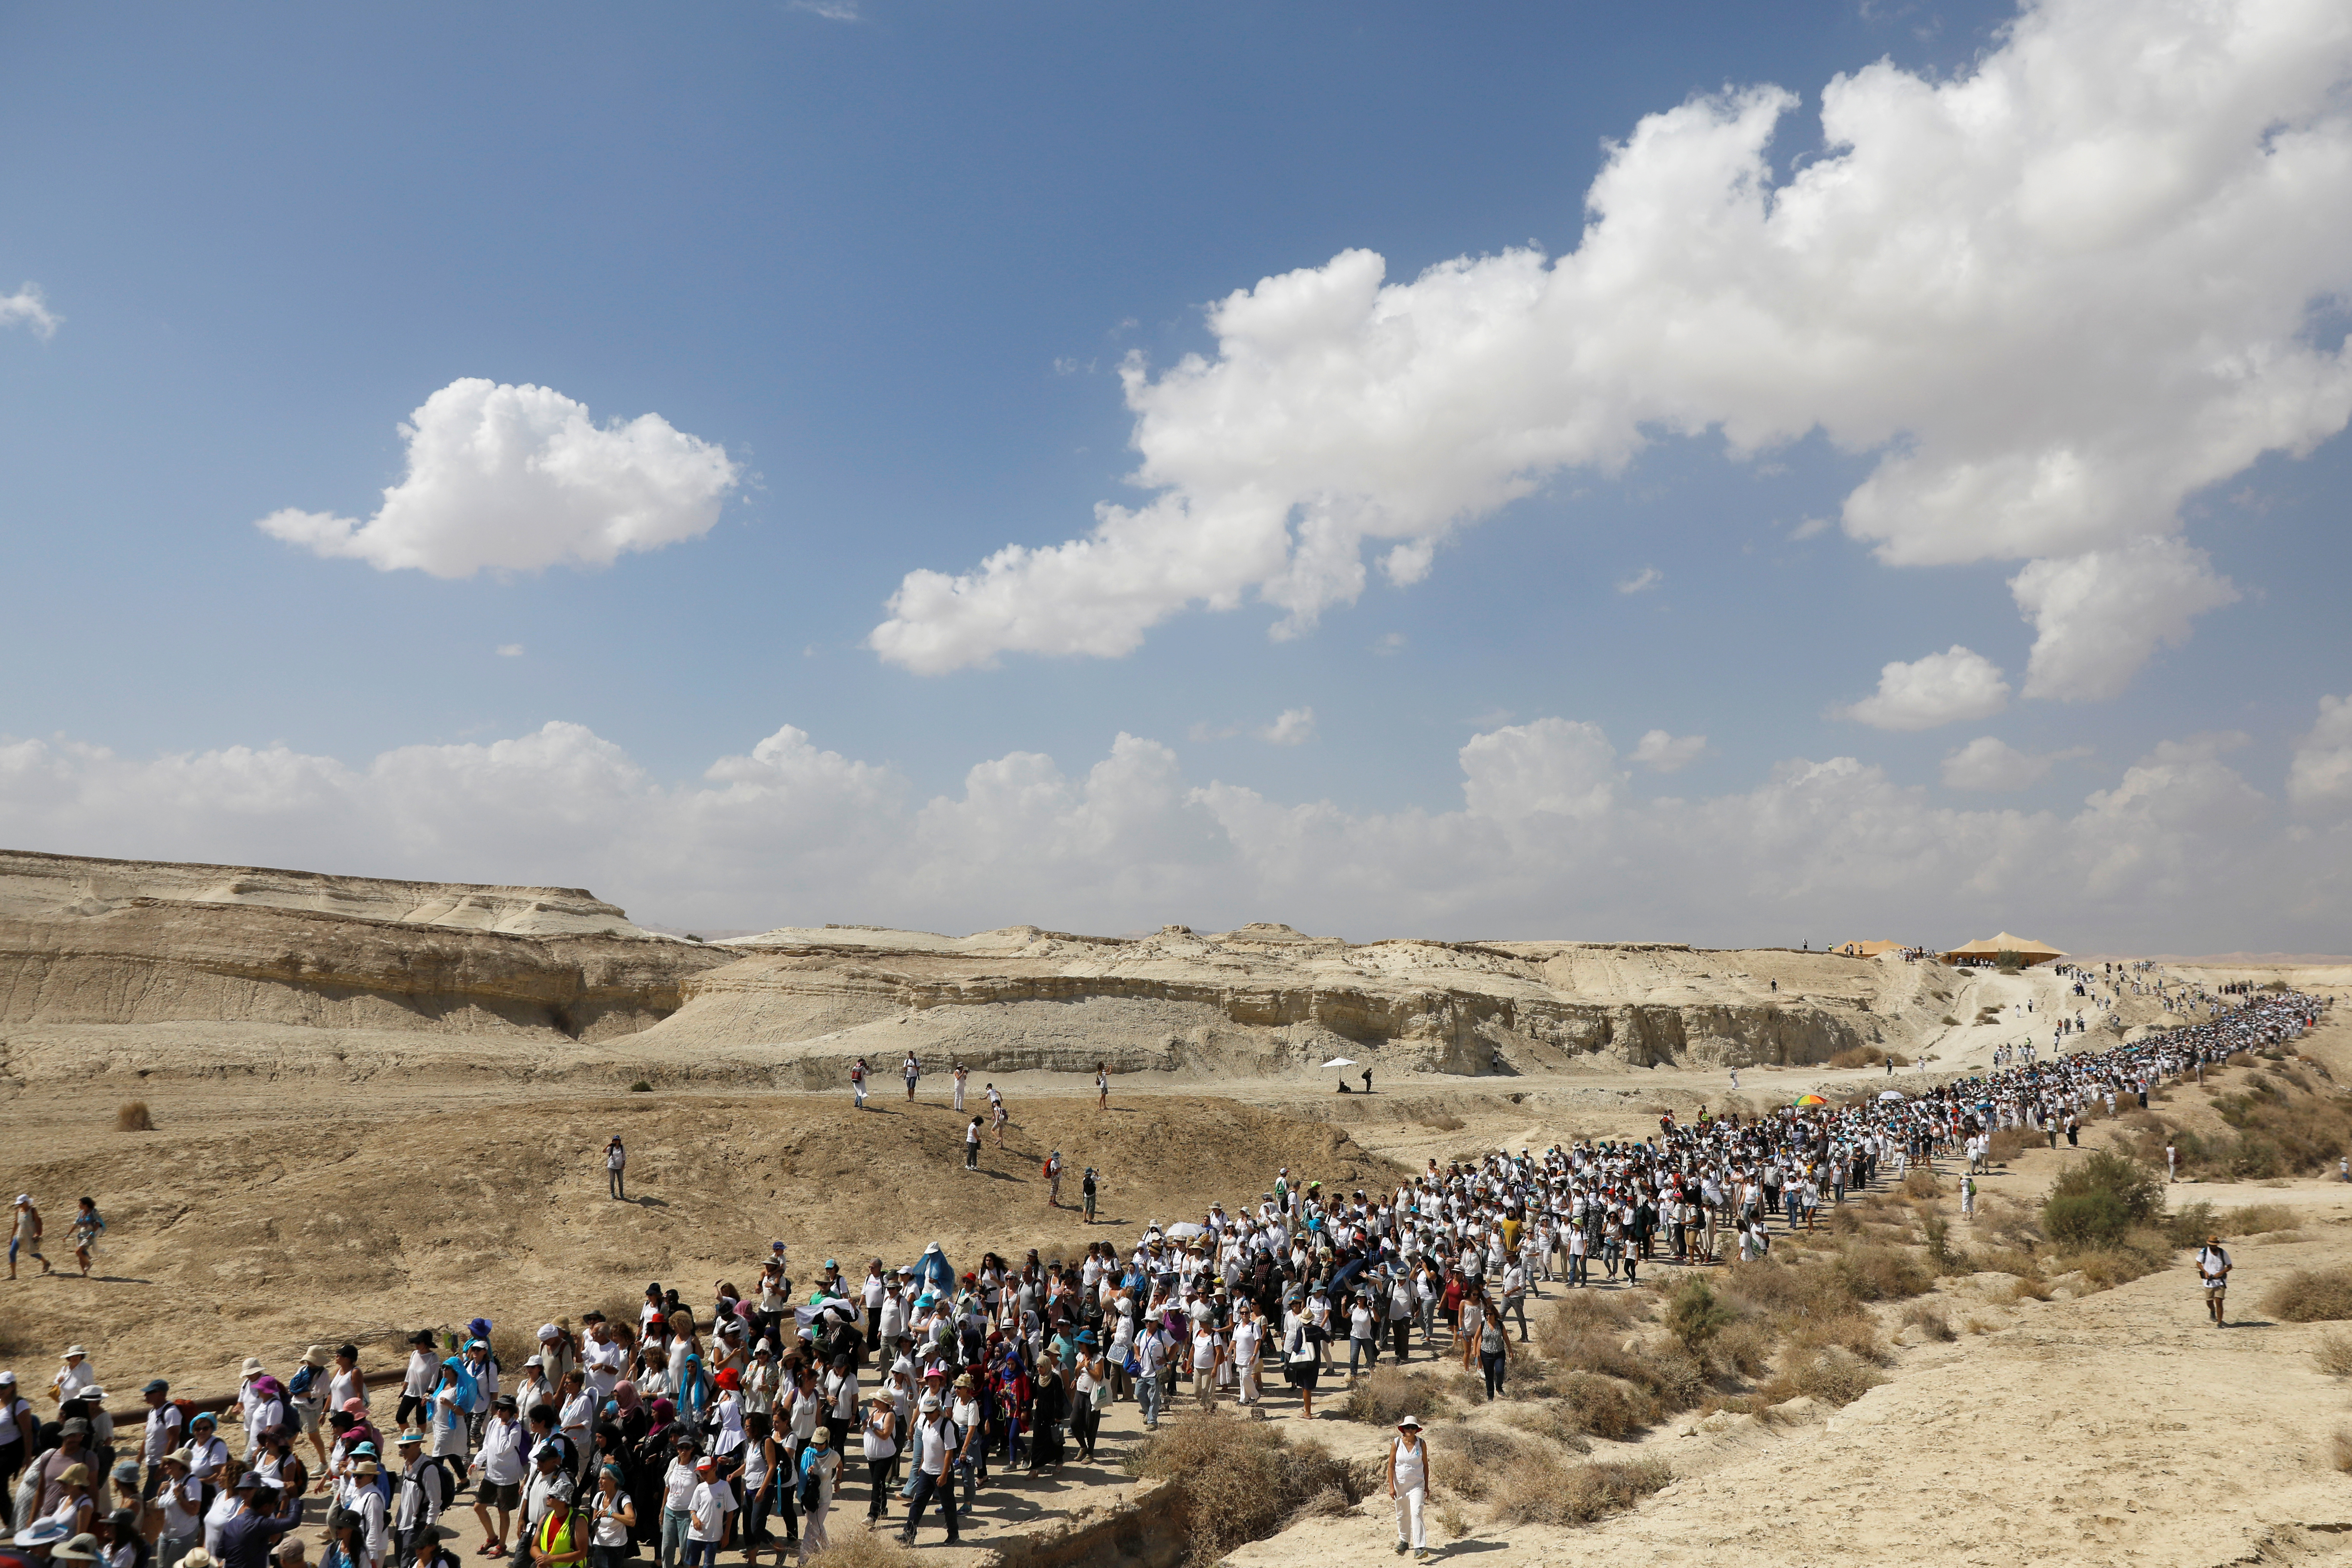 """Palestinian and Israeli women march, as part of an event organised by """"Women Wage Peace"""" group calling for an end to the Israeli-Palestinian conflict, near the Jordan River, in the West Bank October 8, 2017."""